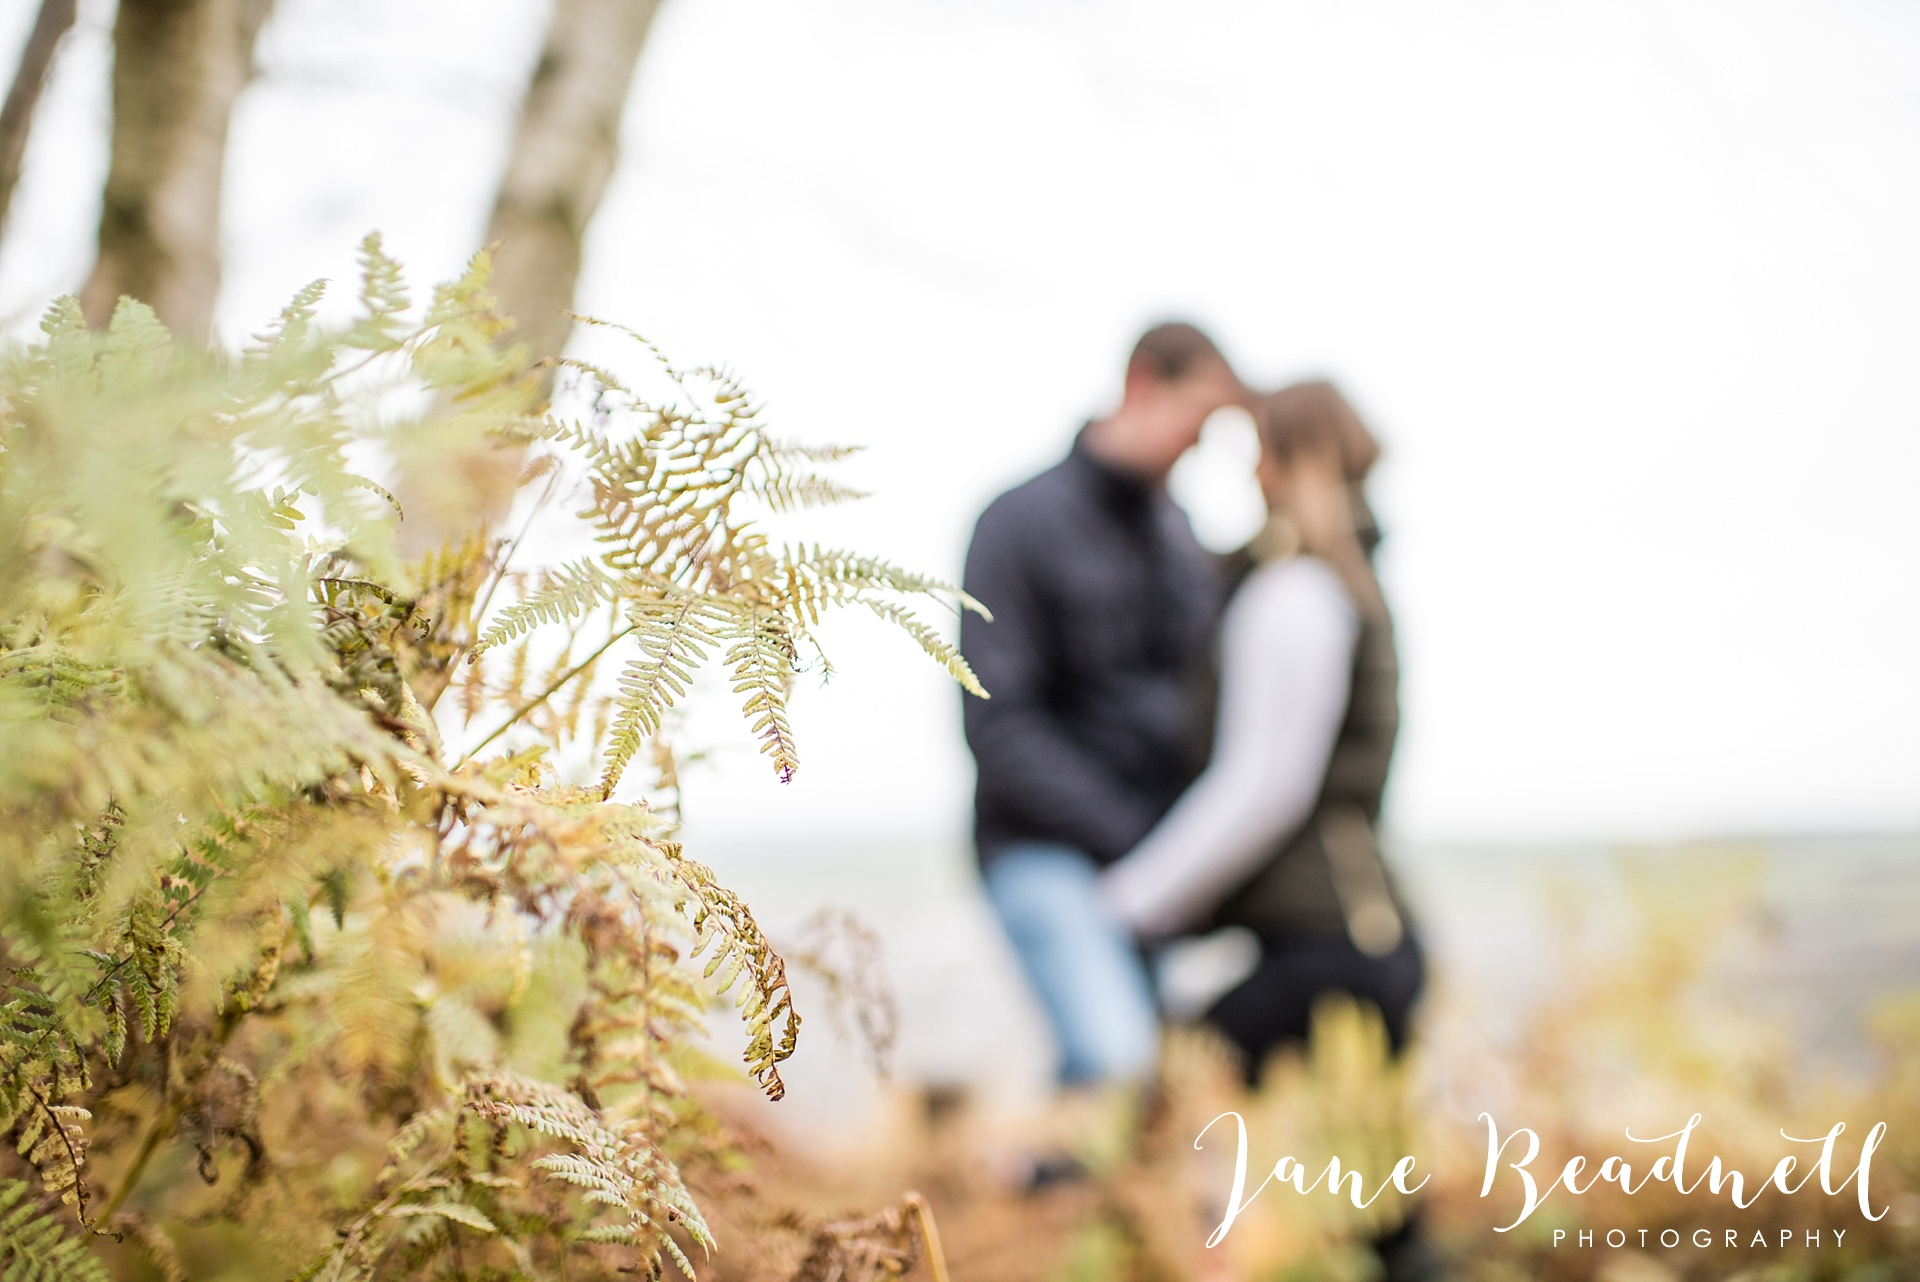 engagement-shoot-yorkshire-wedding-photographer-jane-beadnell-photography-uk-and-destination-wedding-photographer-engagement-shoot_0052